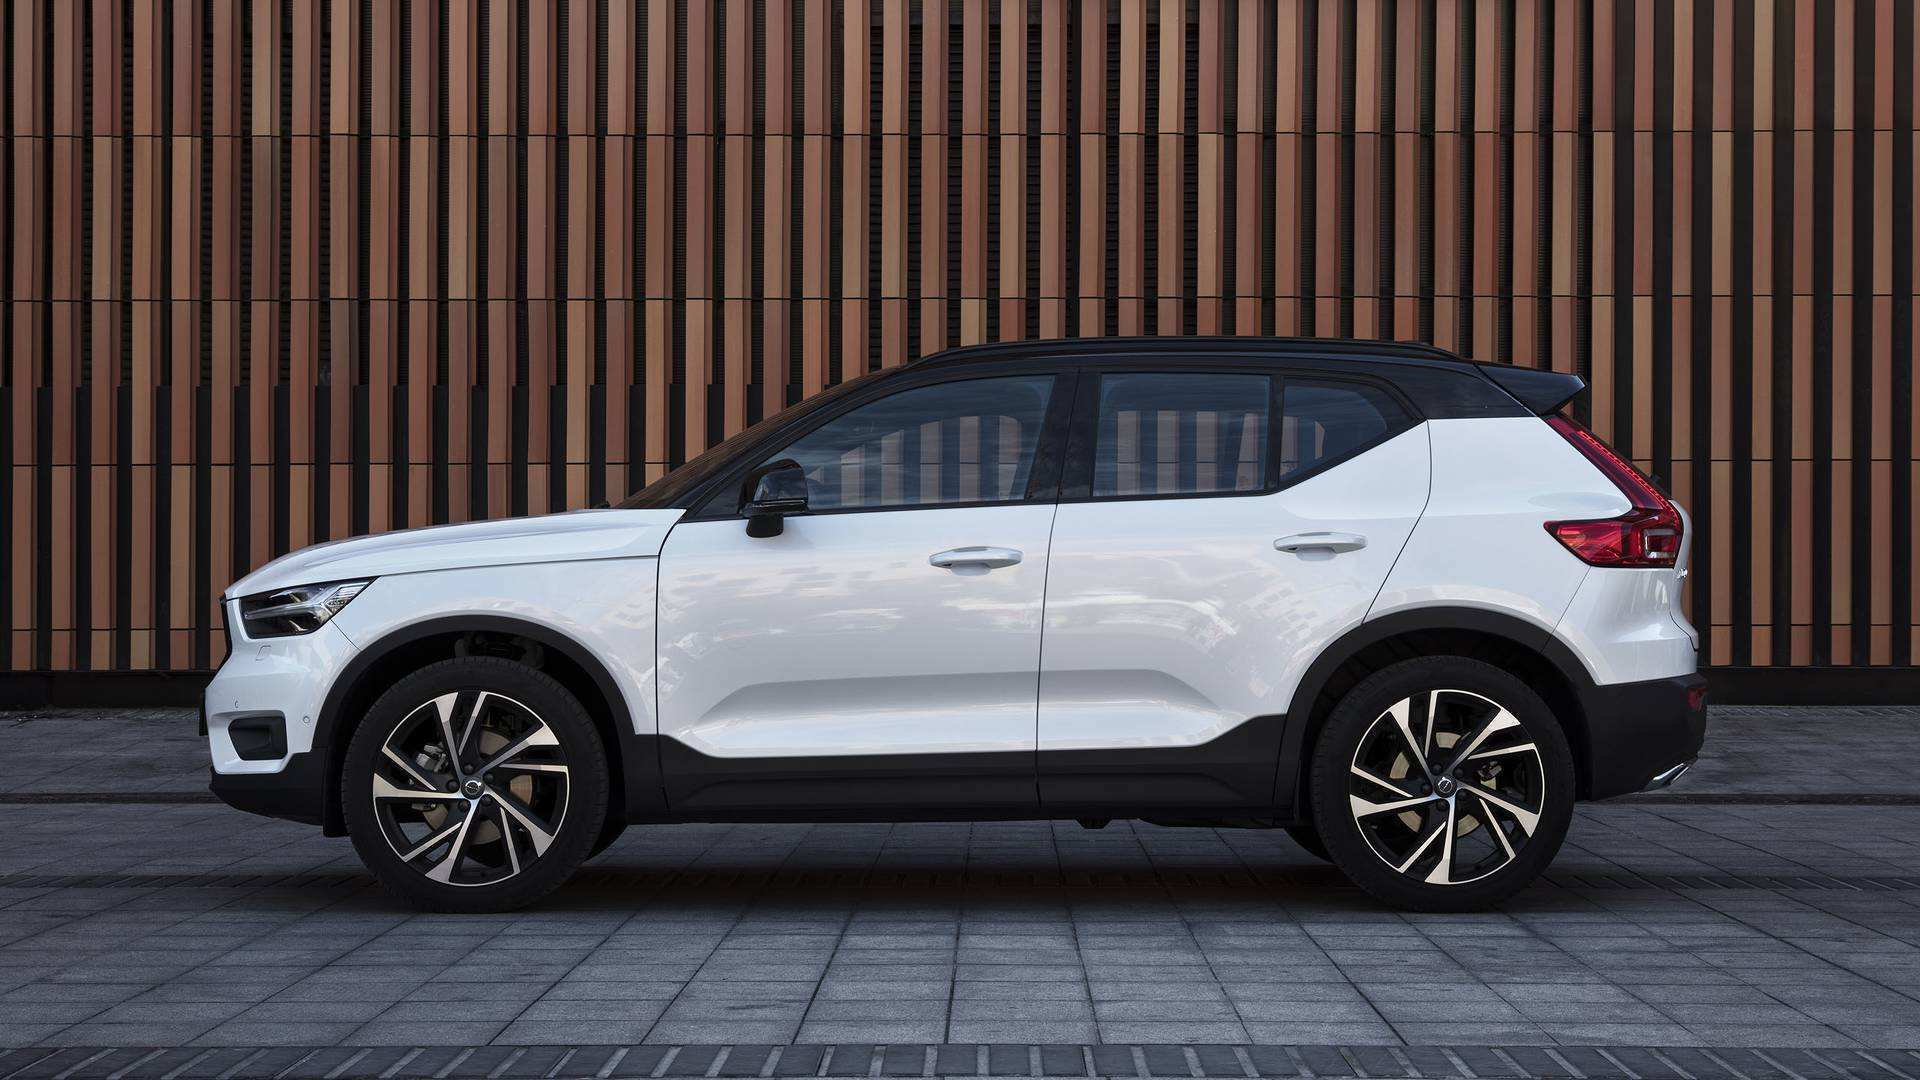 12 Concept of The Volvo Suv 2019 First Drive Price and Review for The Volvo Suv 2019 First Drive